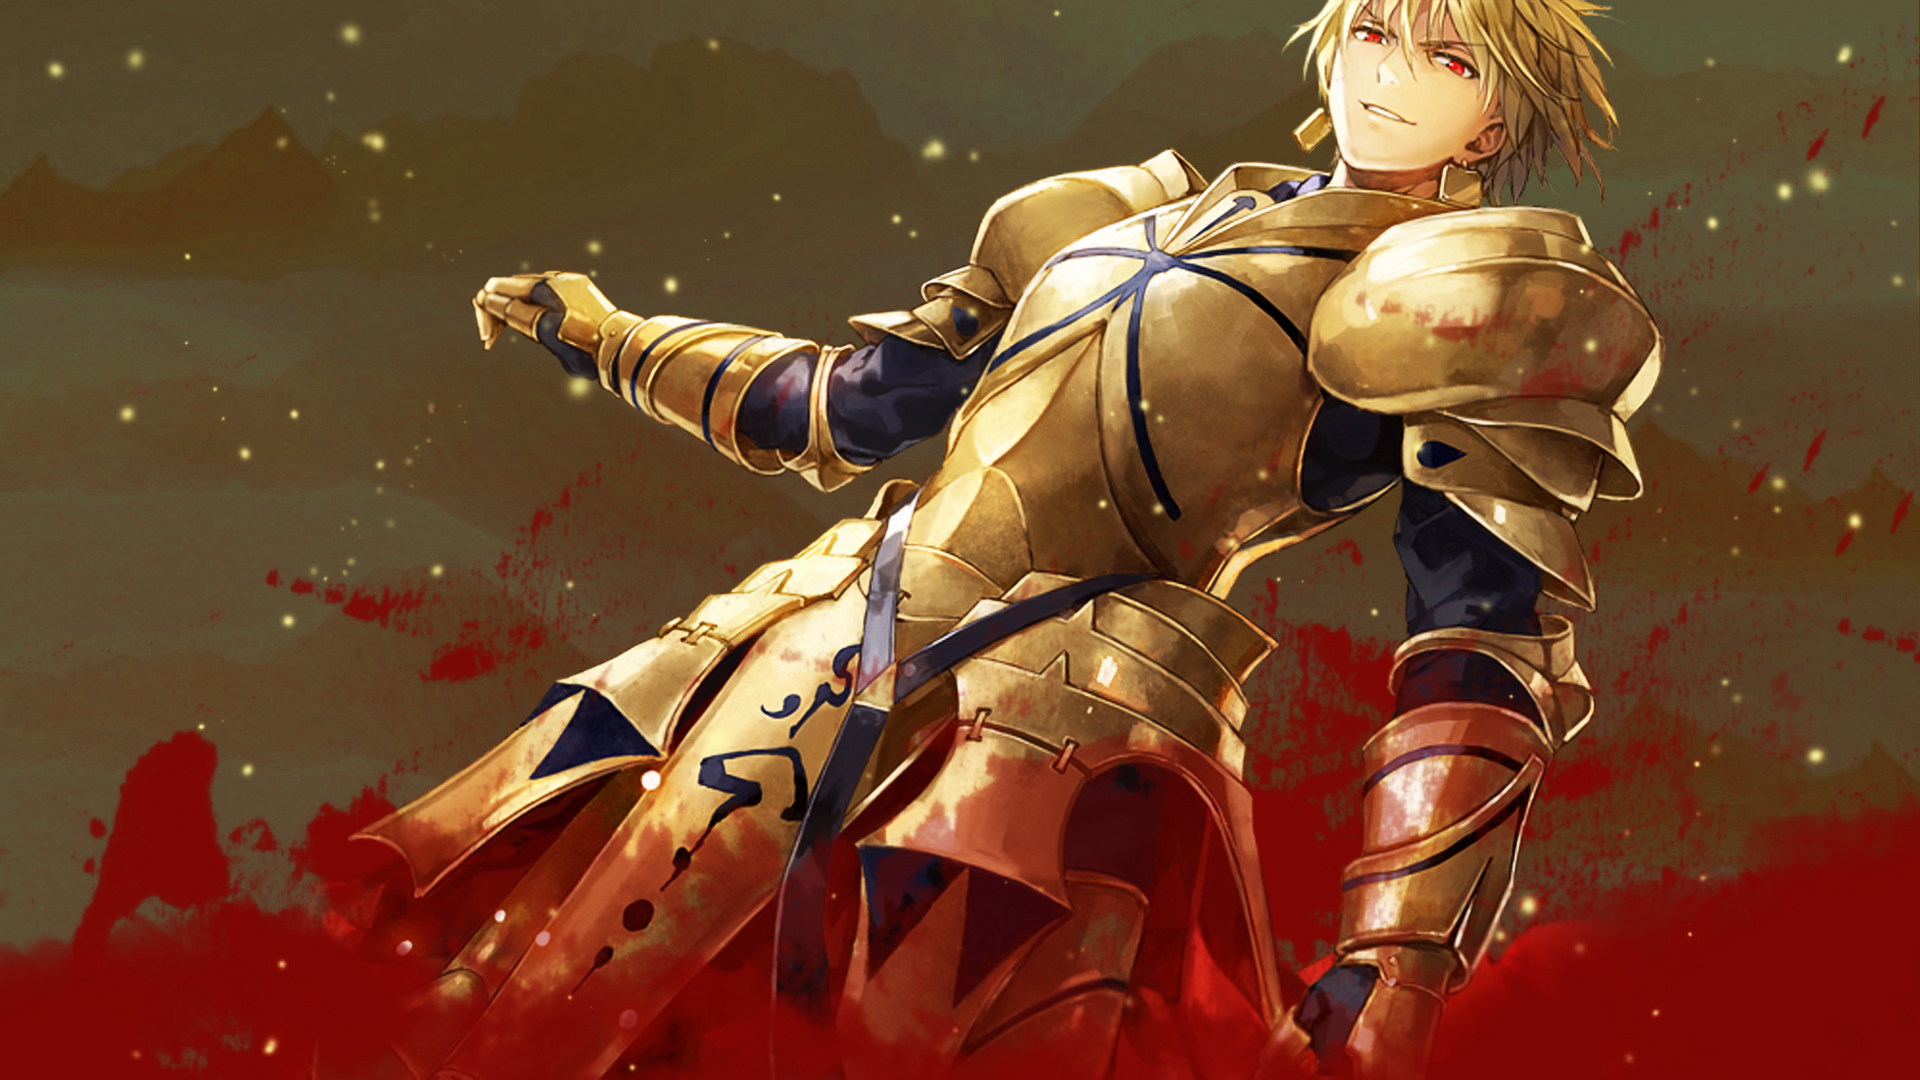 Fate Stay Night Wallpaper Gilgamesh Fate 482478 Hd